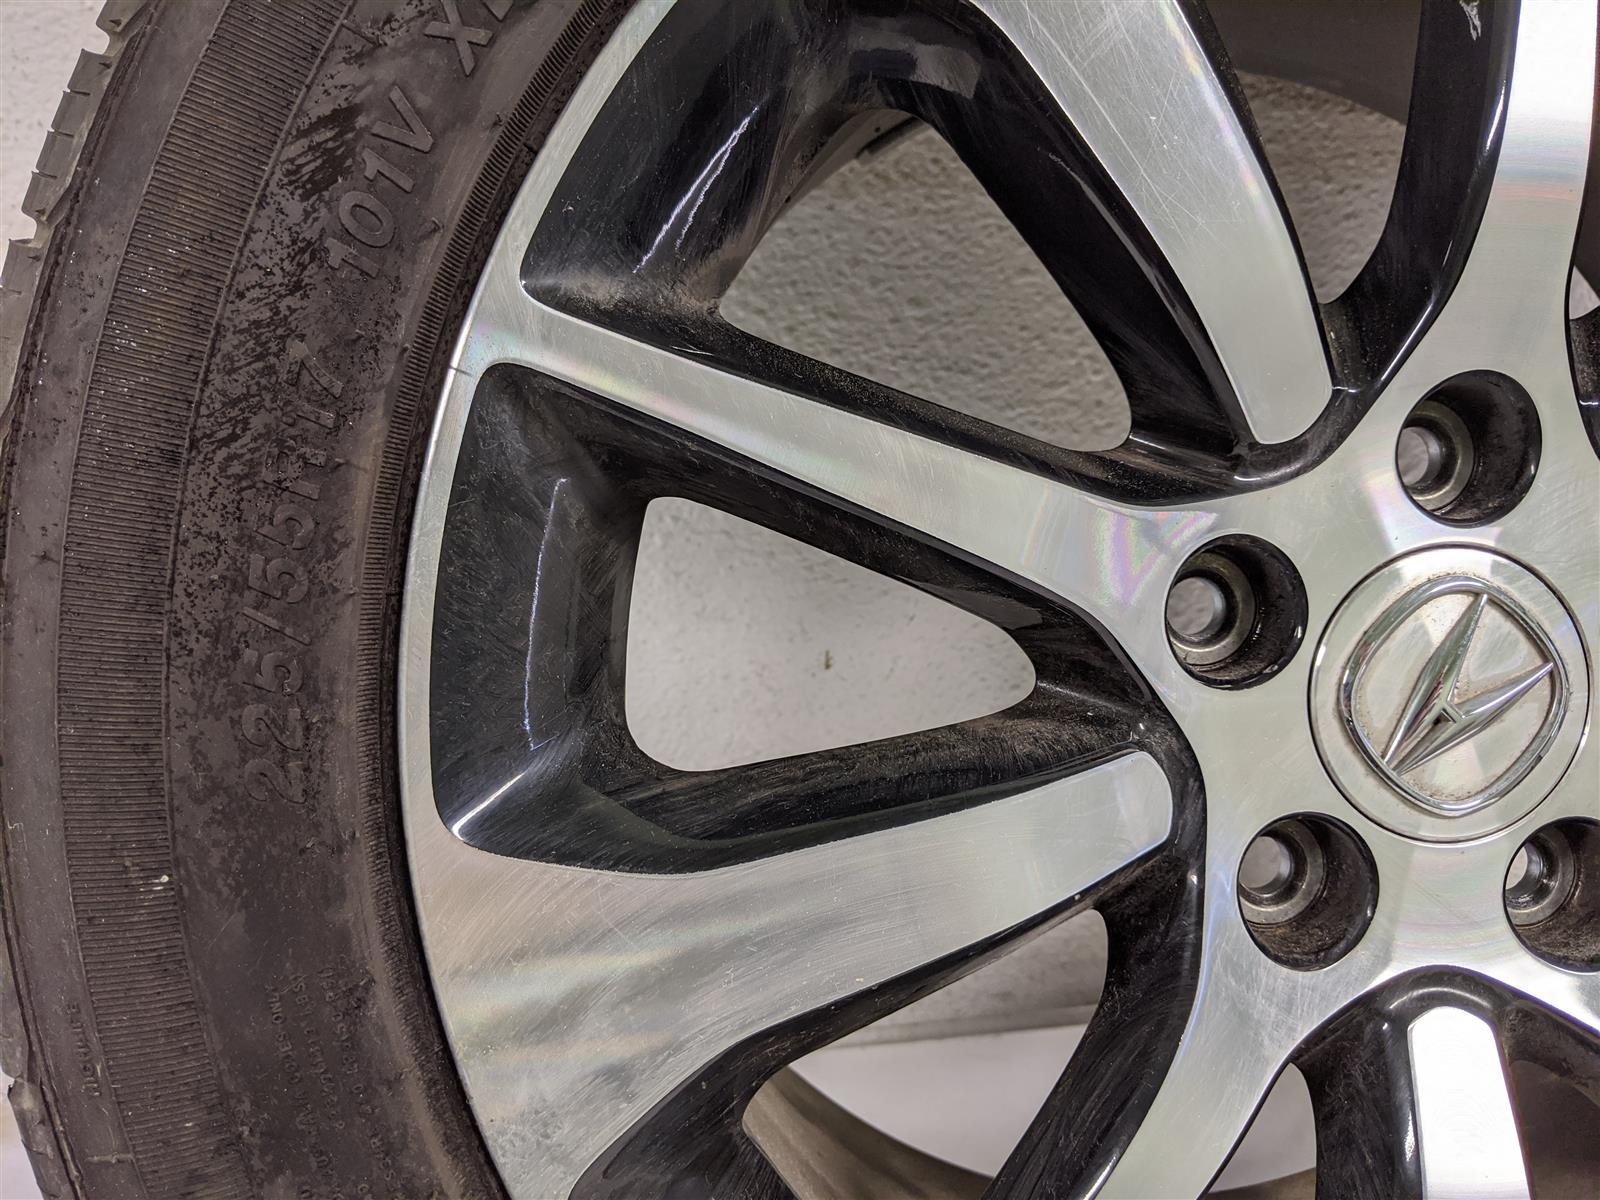 2017 Acura TLX 17 Inch Alloy Wheel Rim Replacement